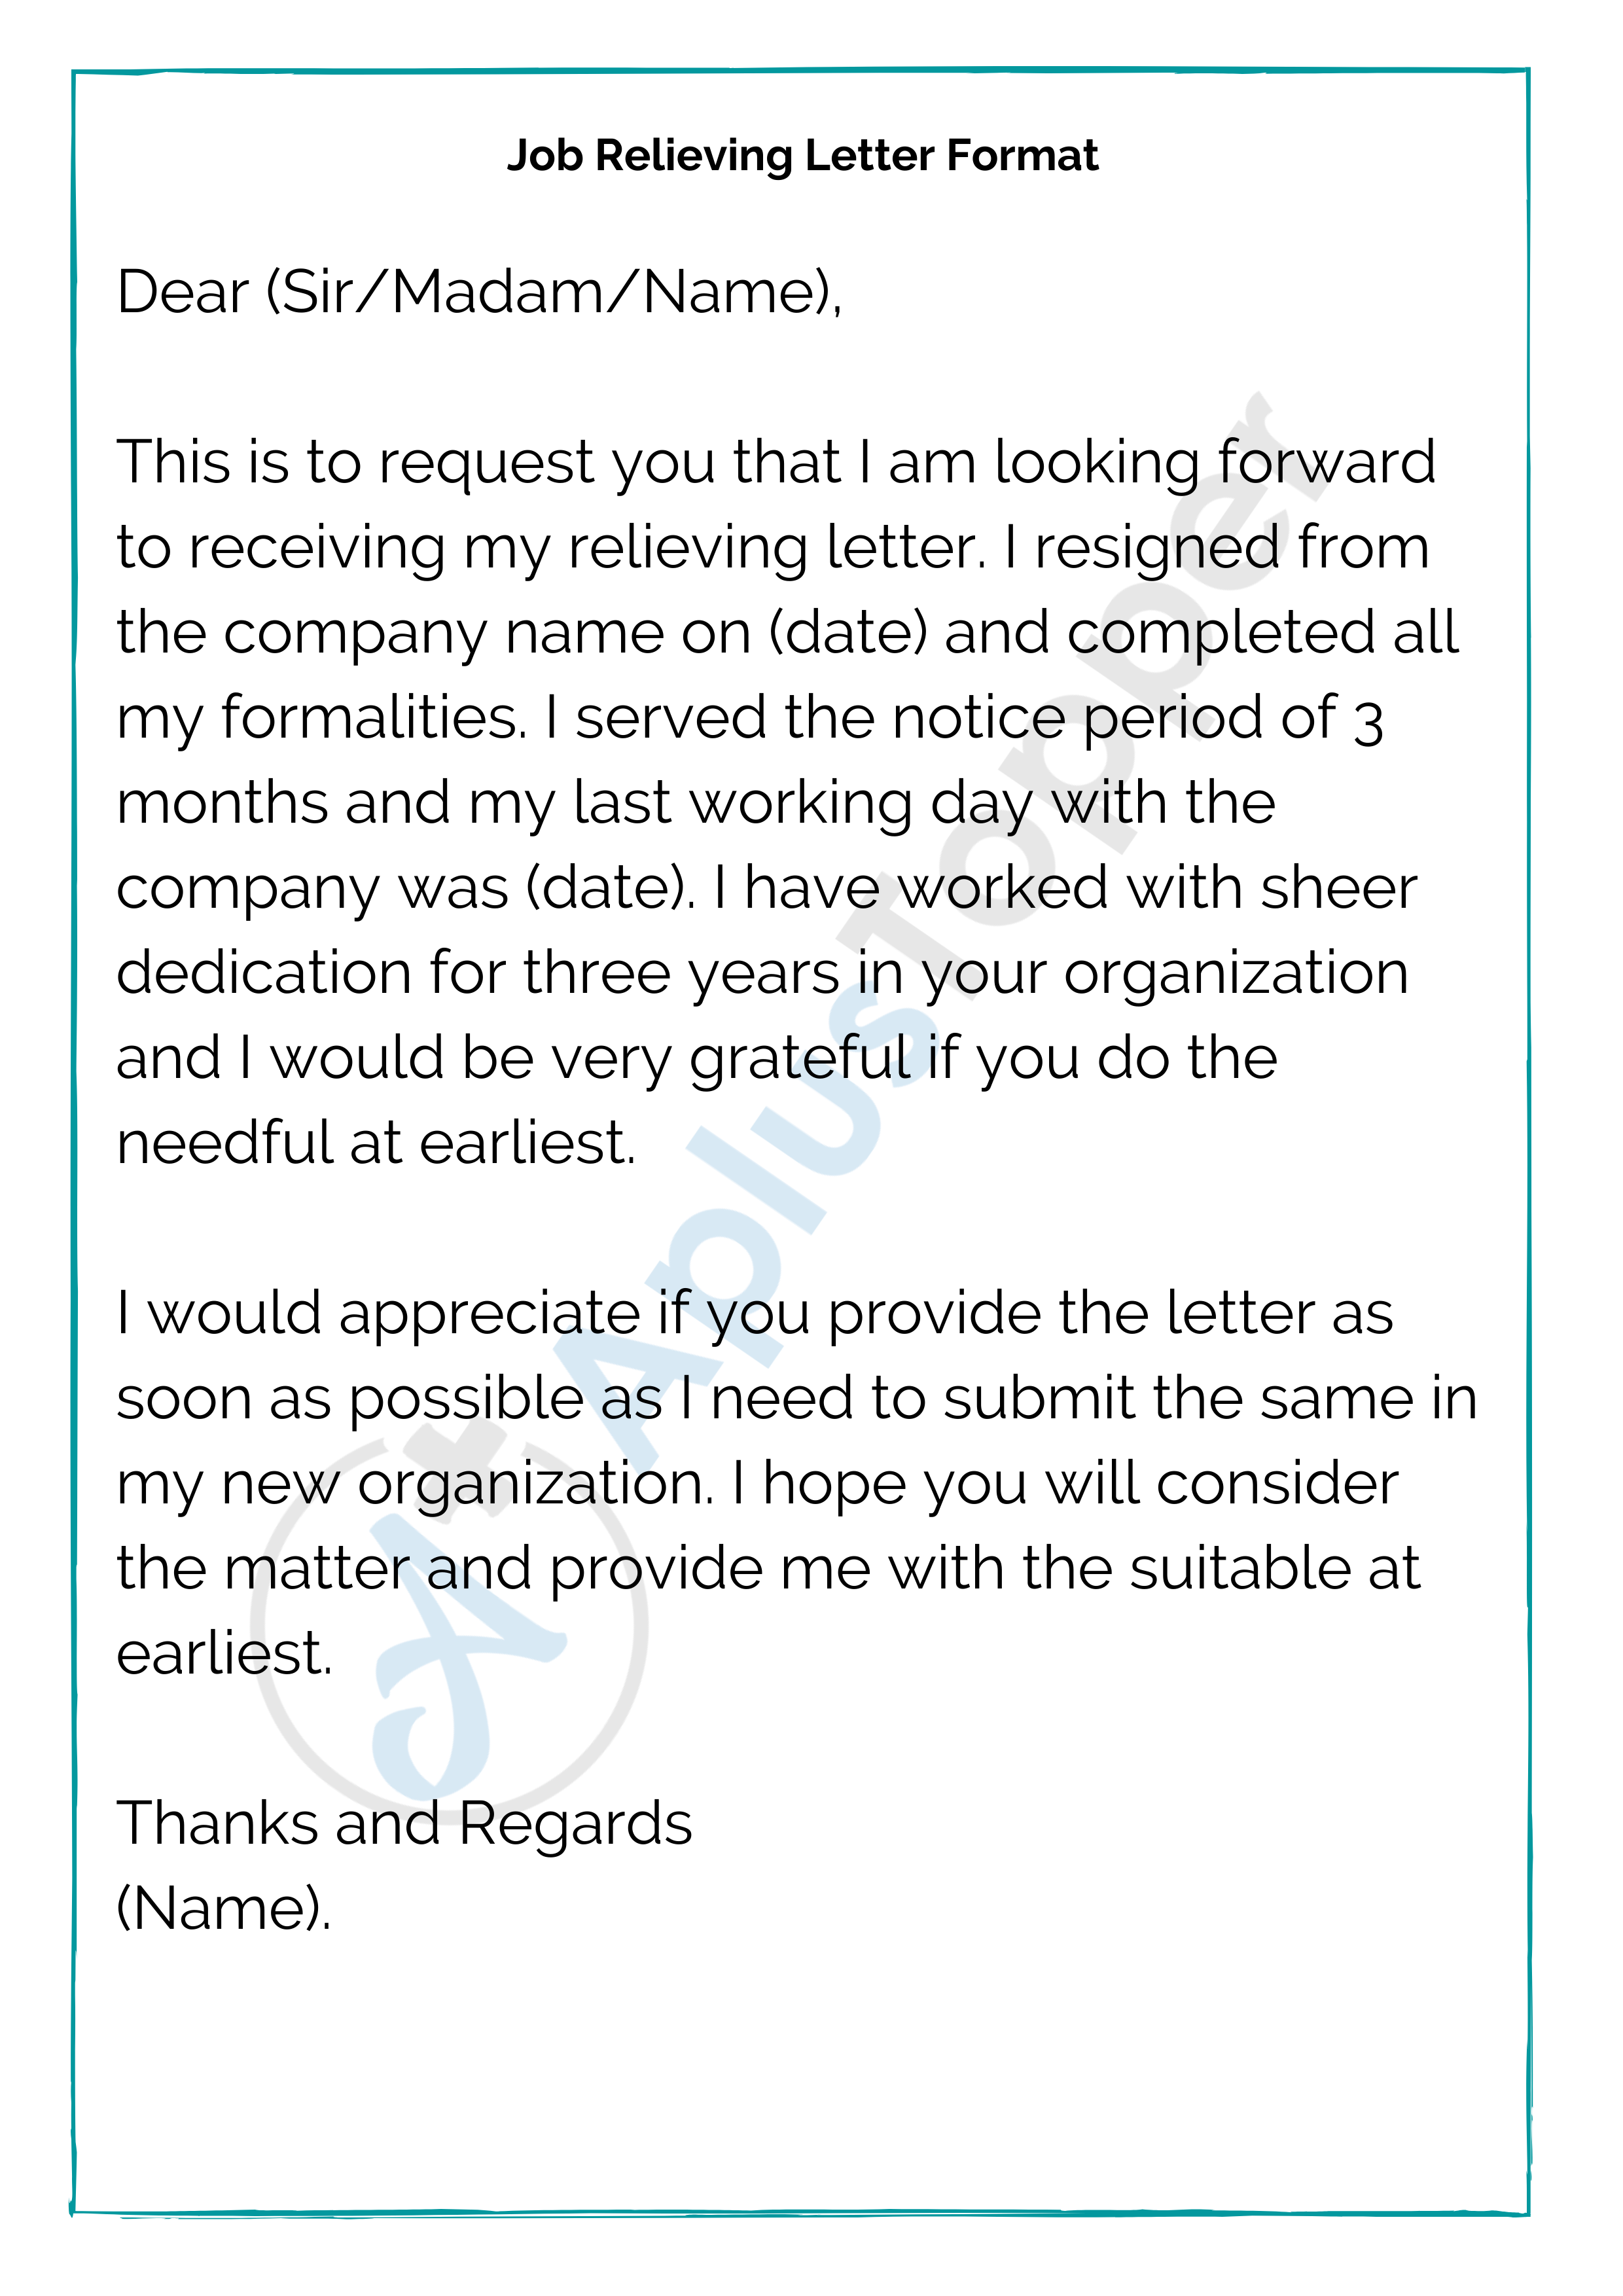 Relieving Letter Format